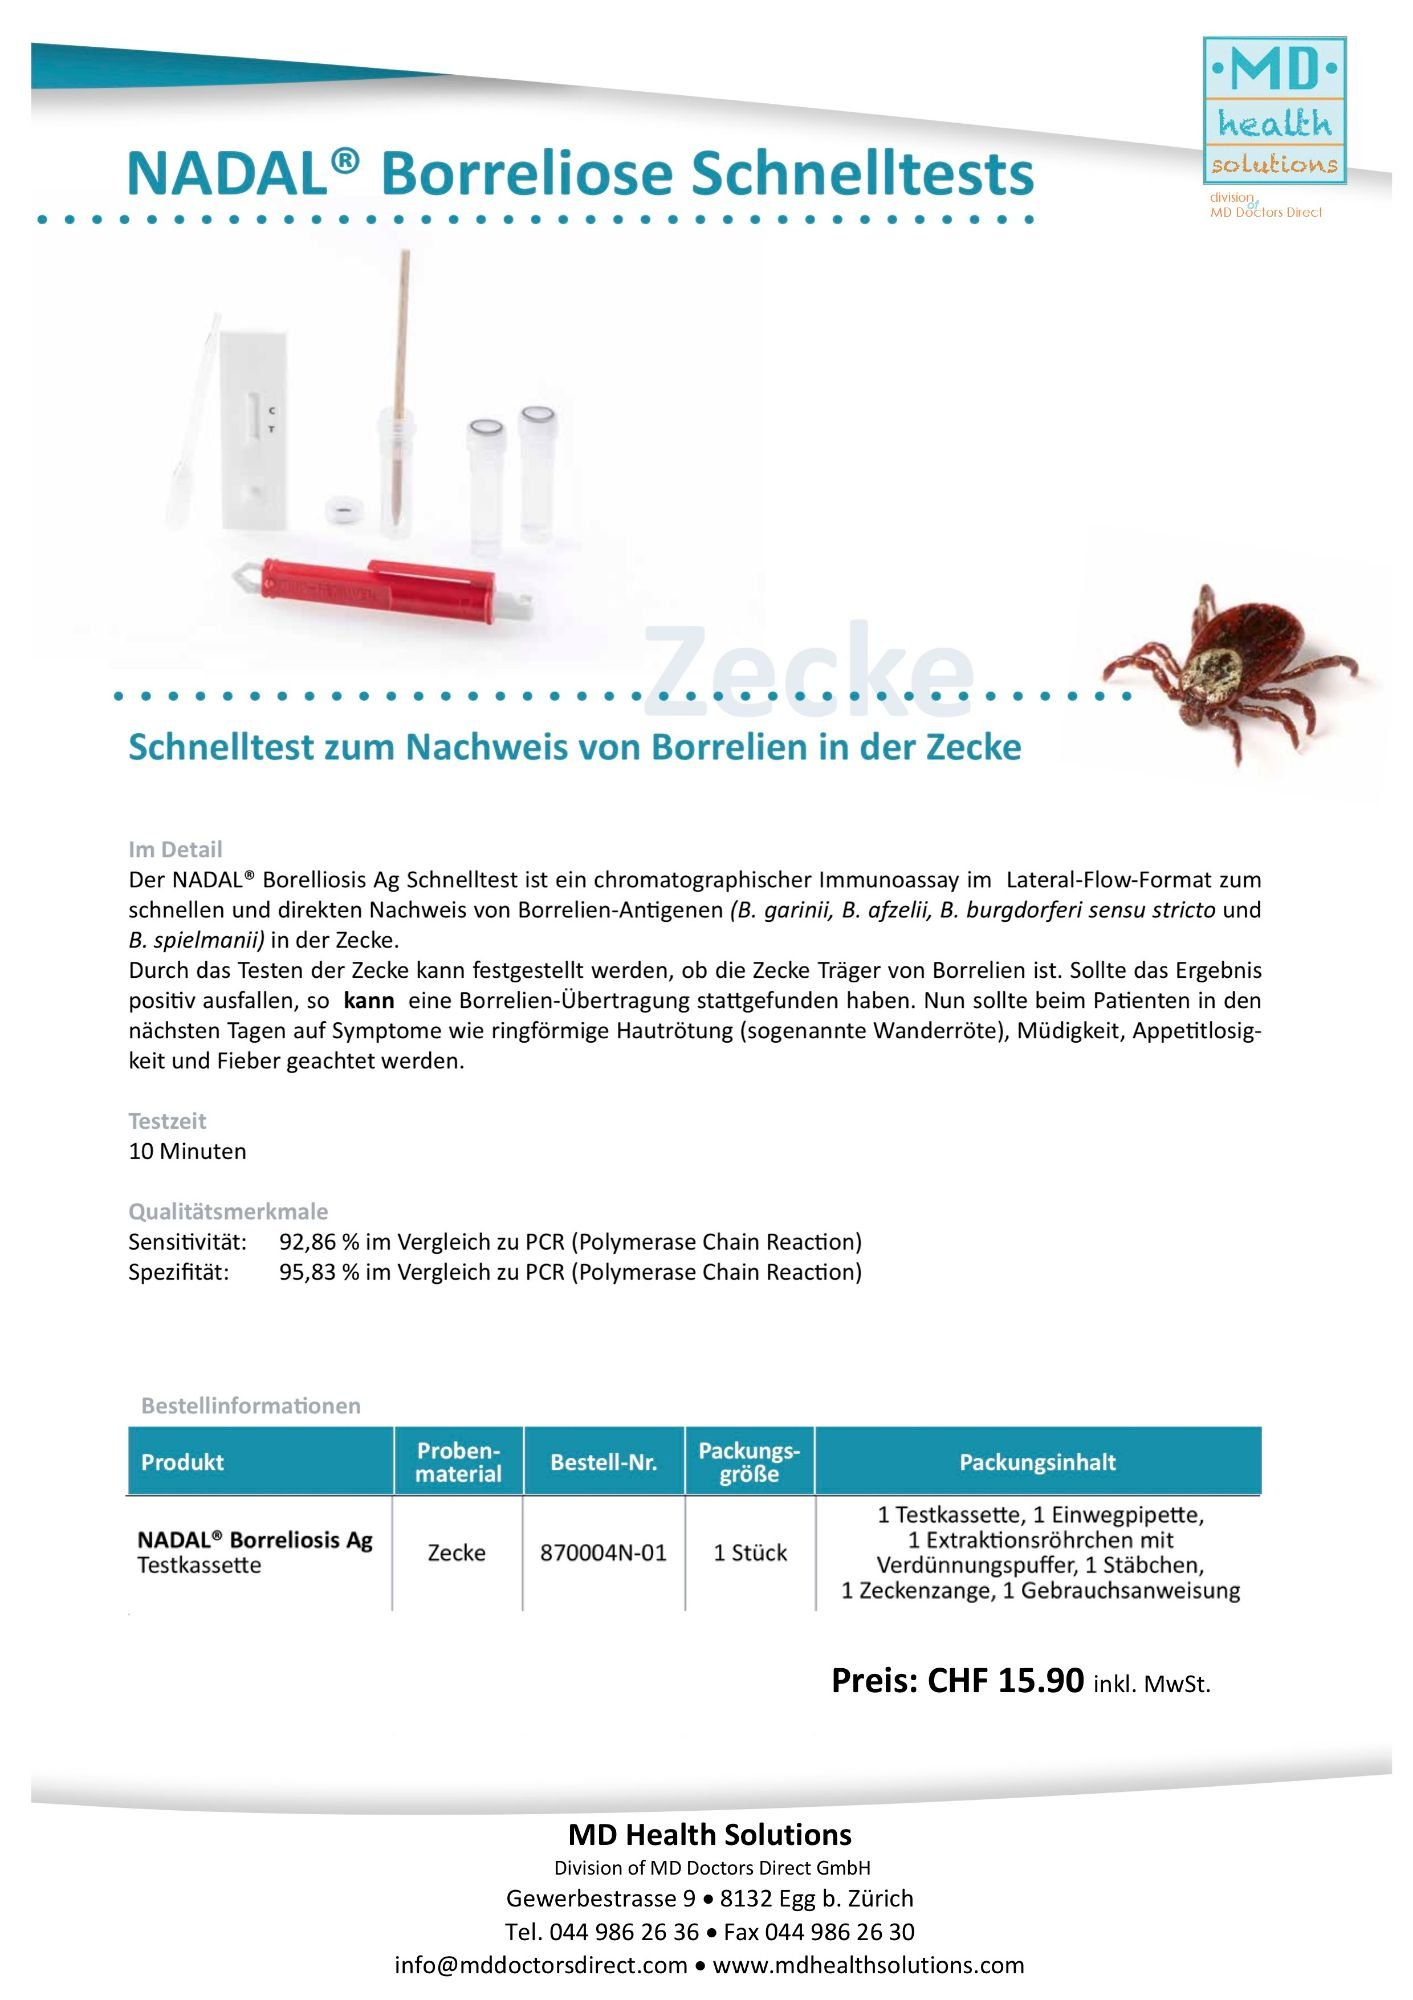 Nadal® Borreliose Flyer Web